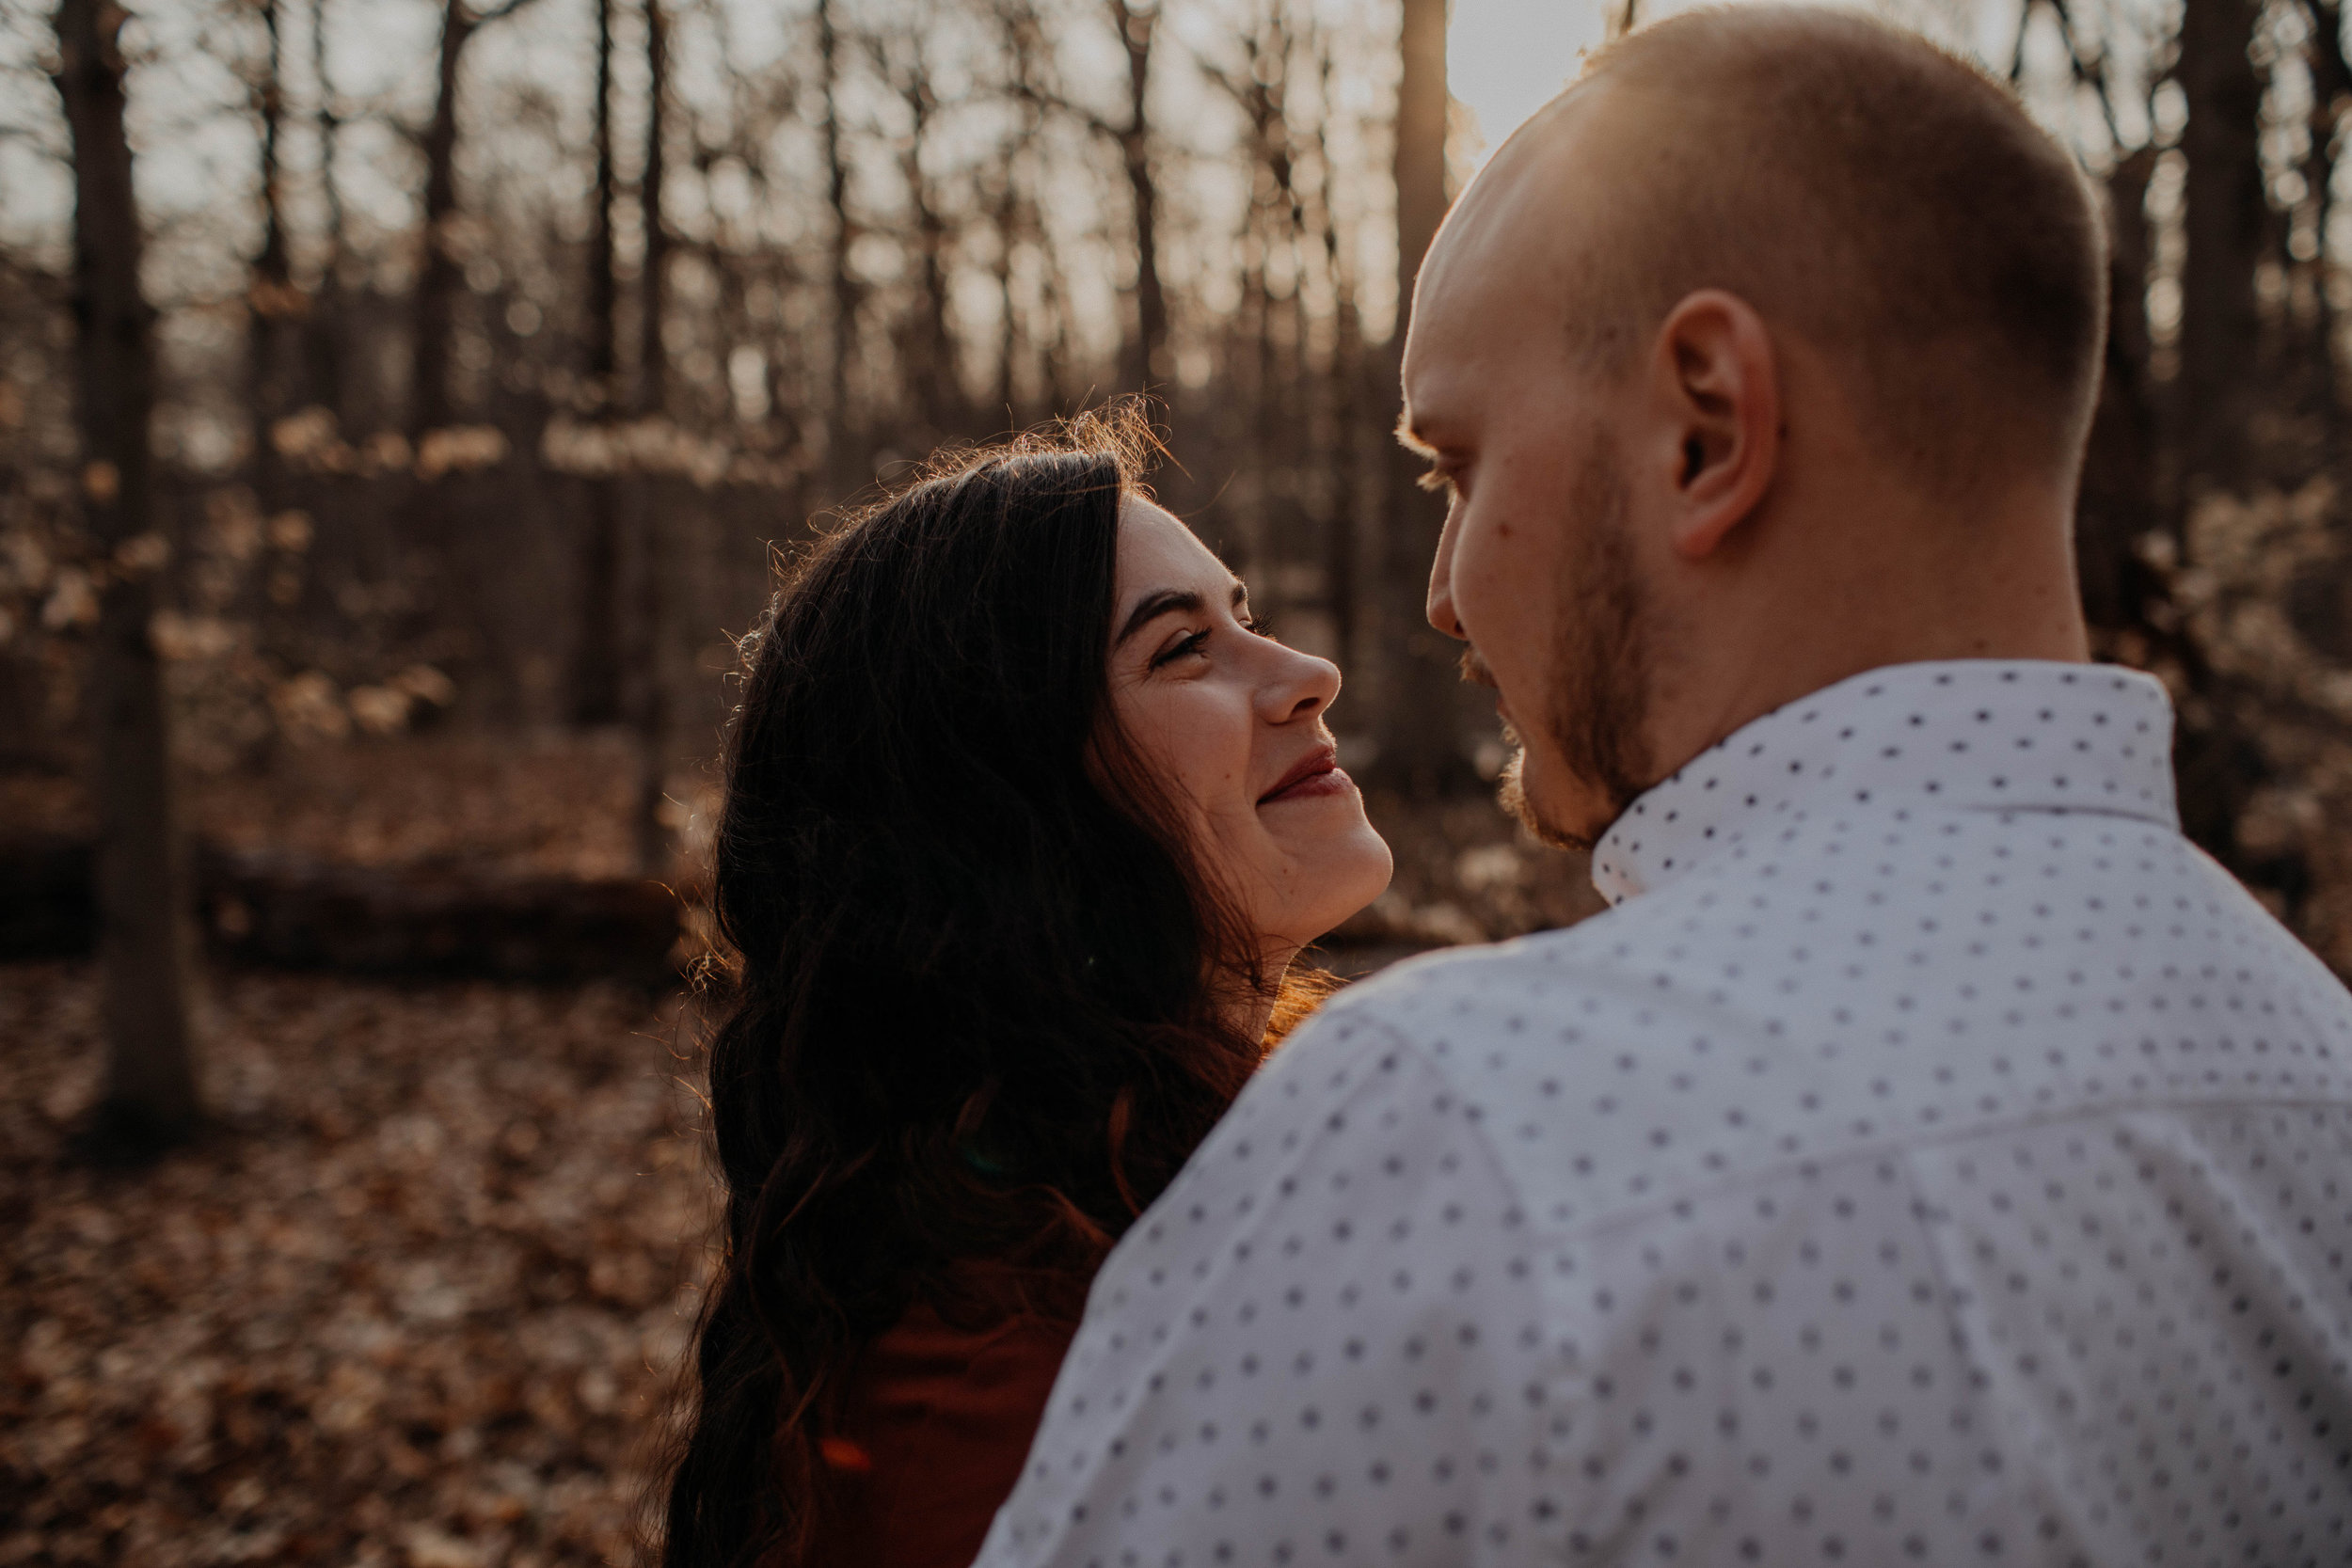 highbanks metro park columbus ohio wedding and couples session photographer21.jpg